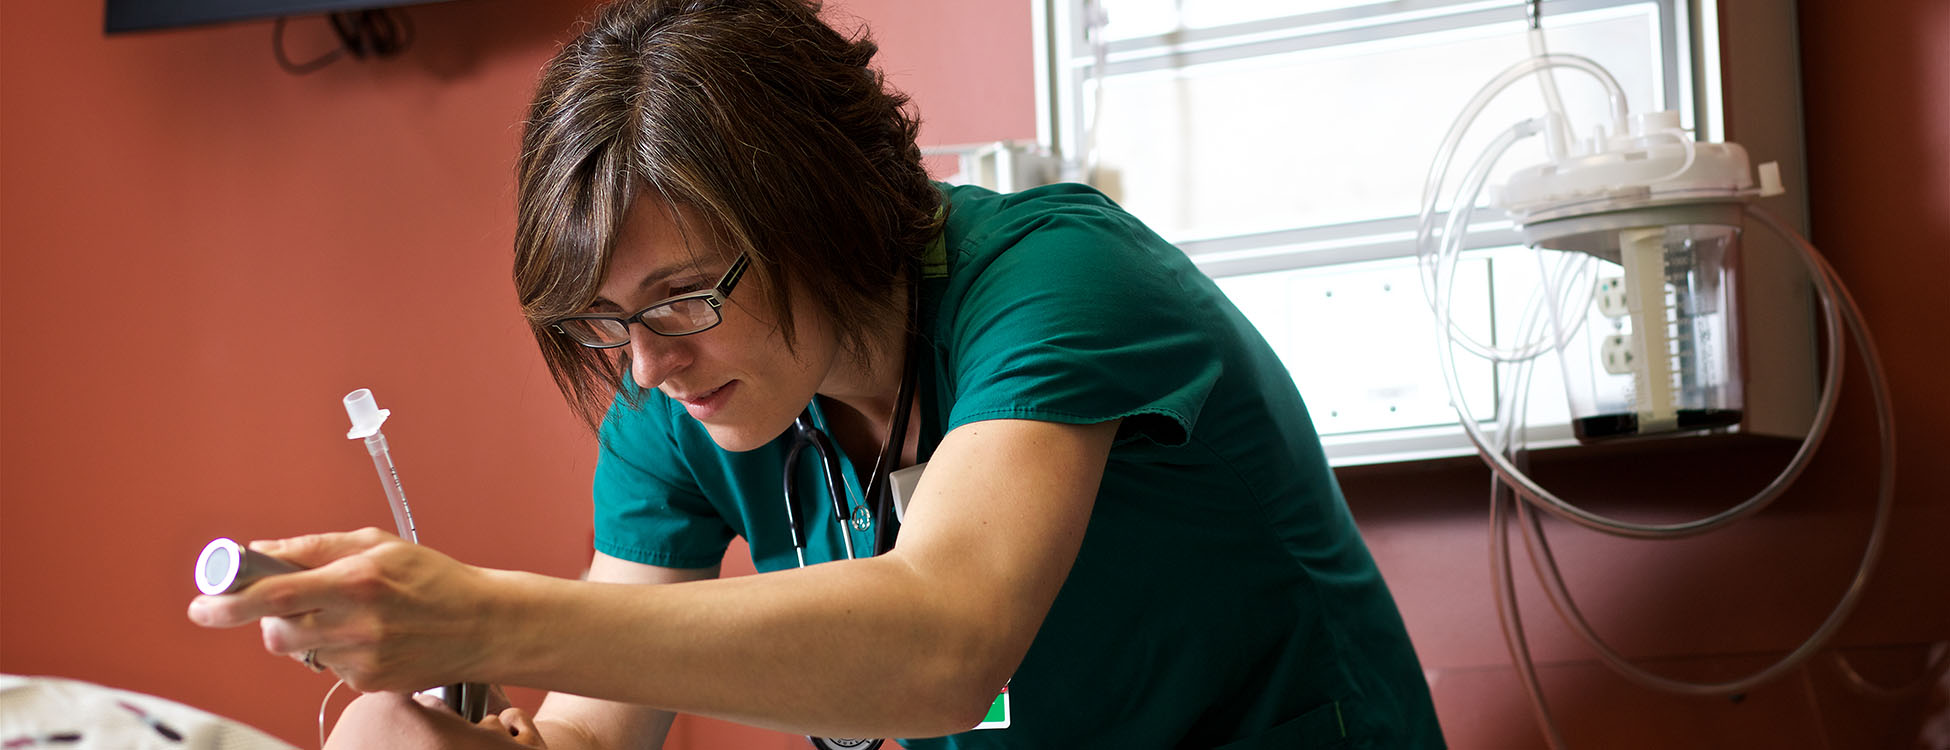 Kate Morrison, student, practices on a simulation man, respiratory therapy, healthcare, lab, hands on